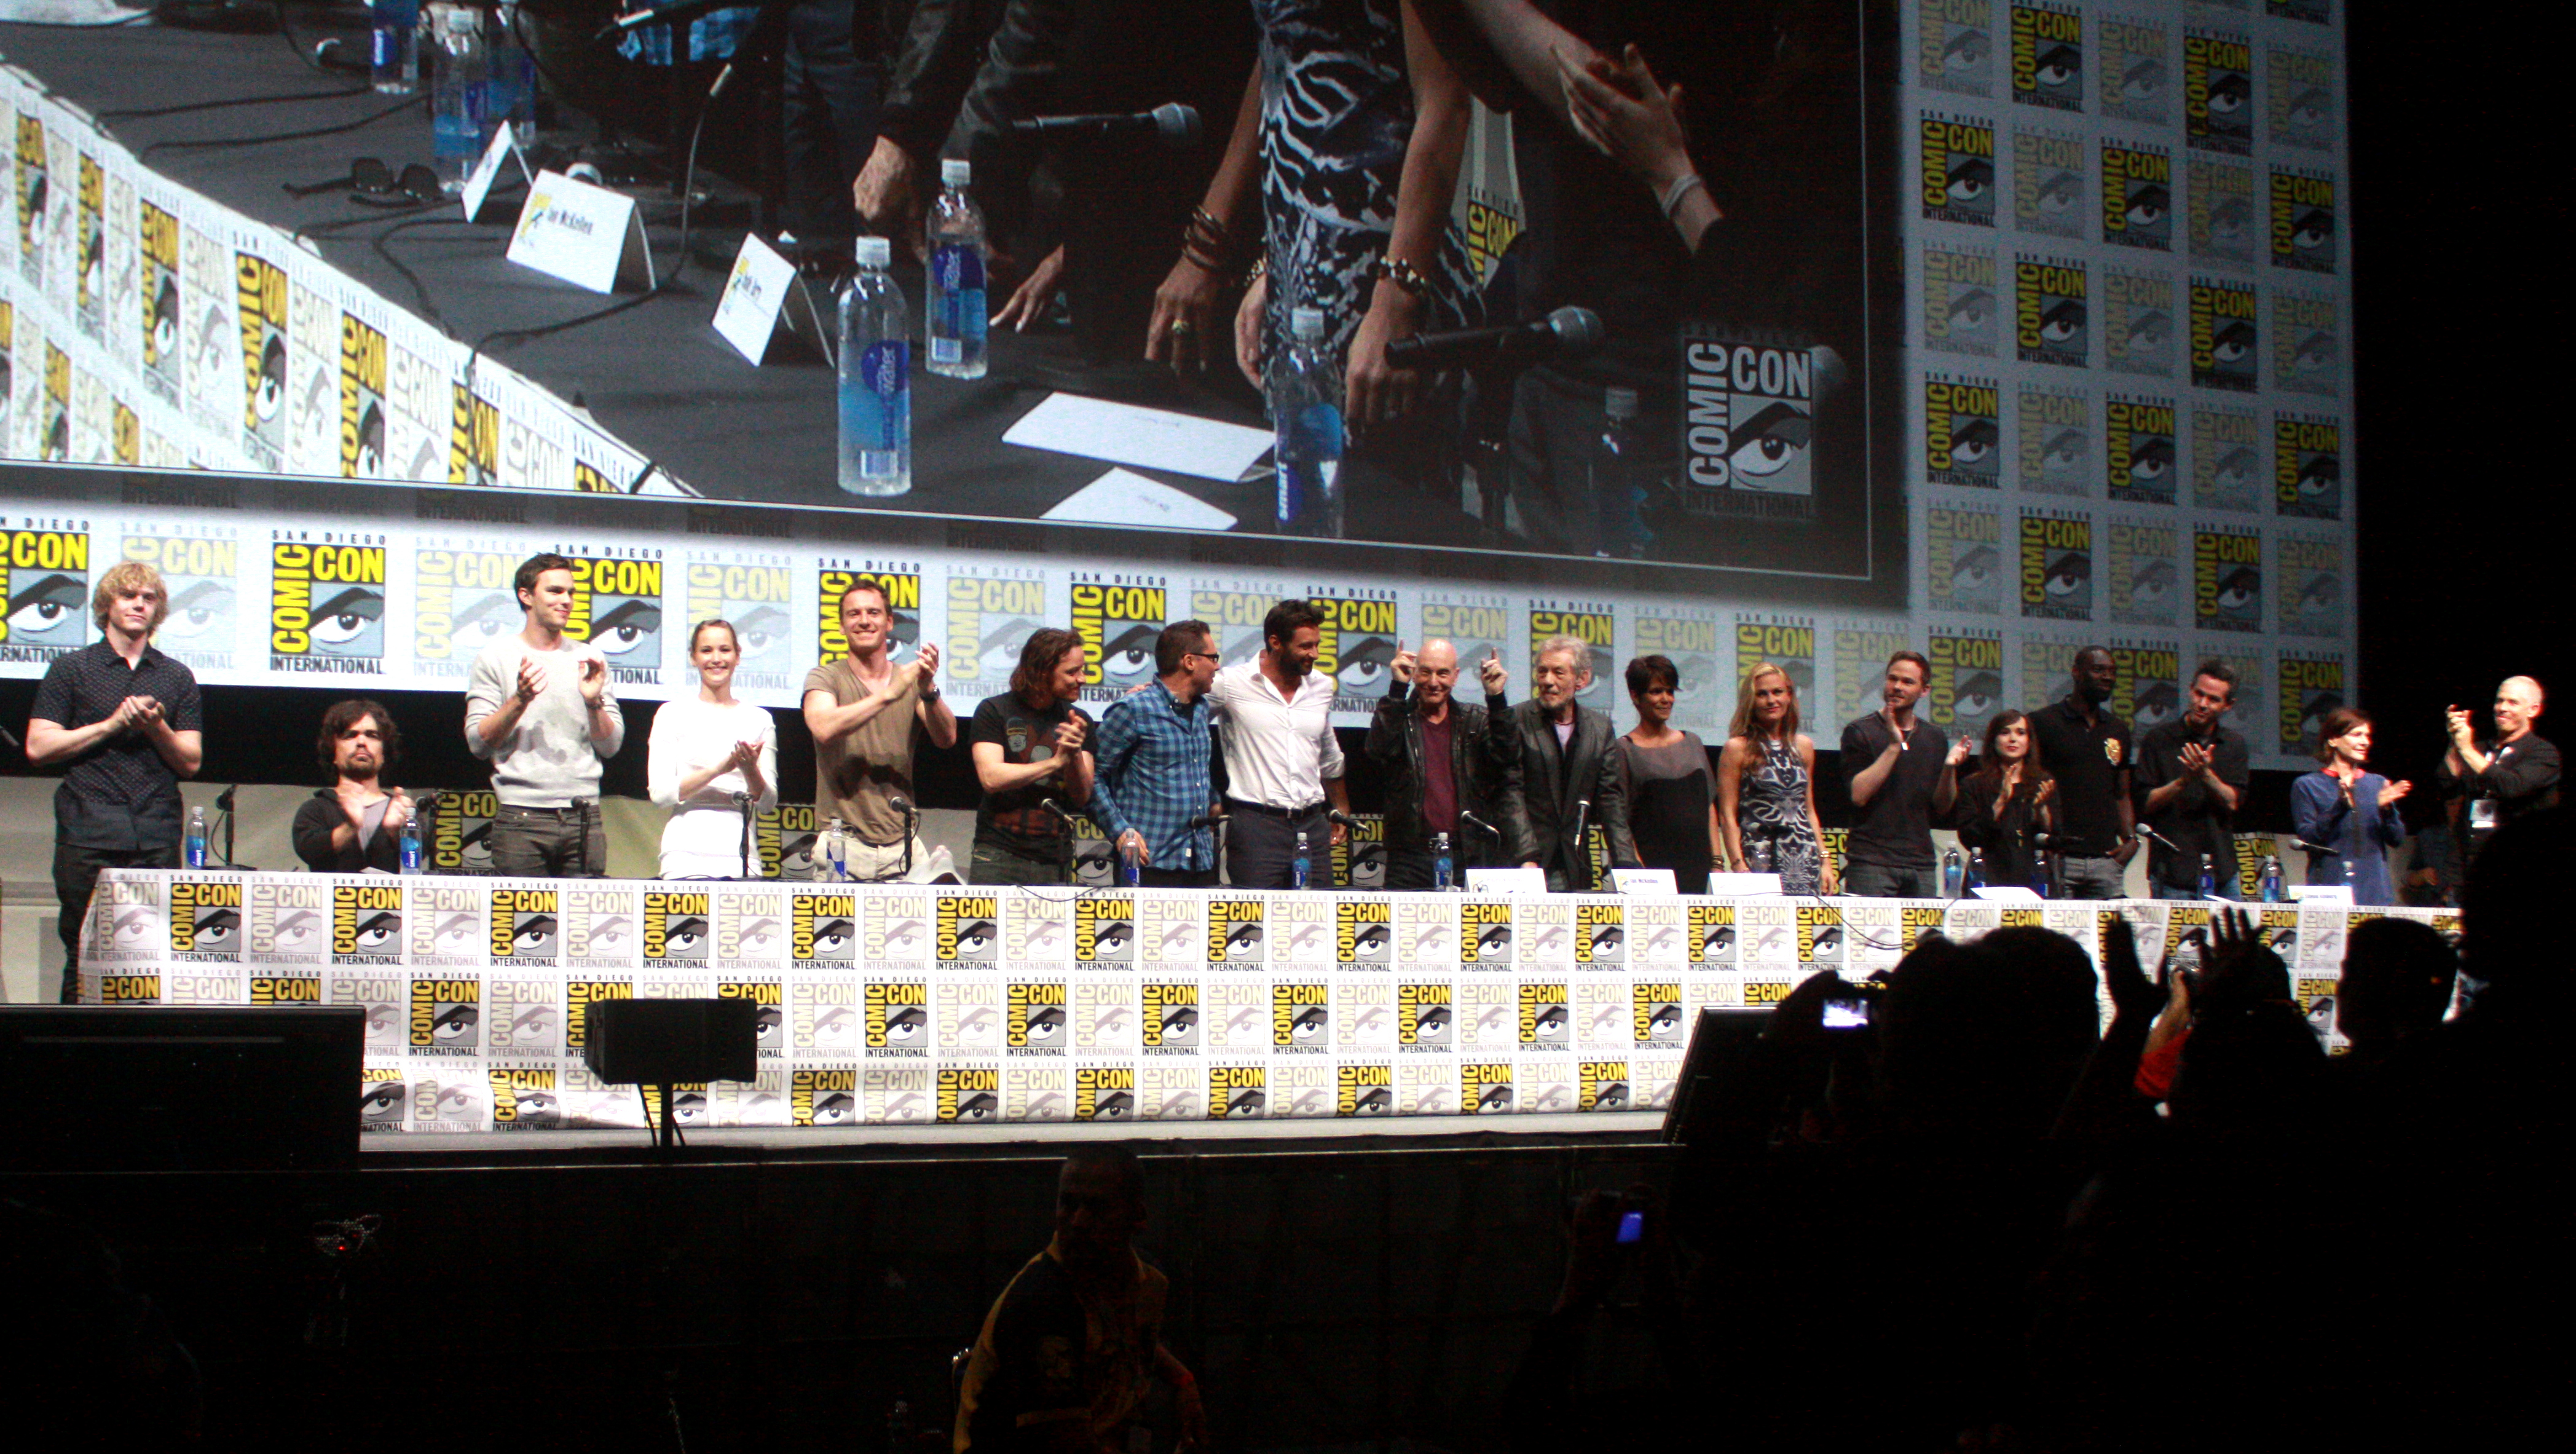 upload.wikimedia.org_wikipedia_commons_2_2f_x-men_days_of_future_past_cast_by_gage_skidmore.jpg